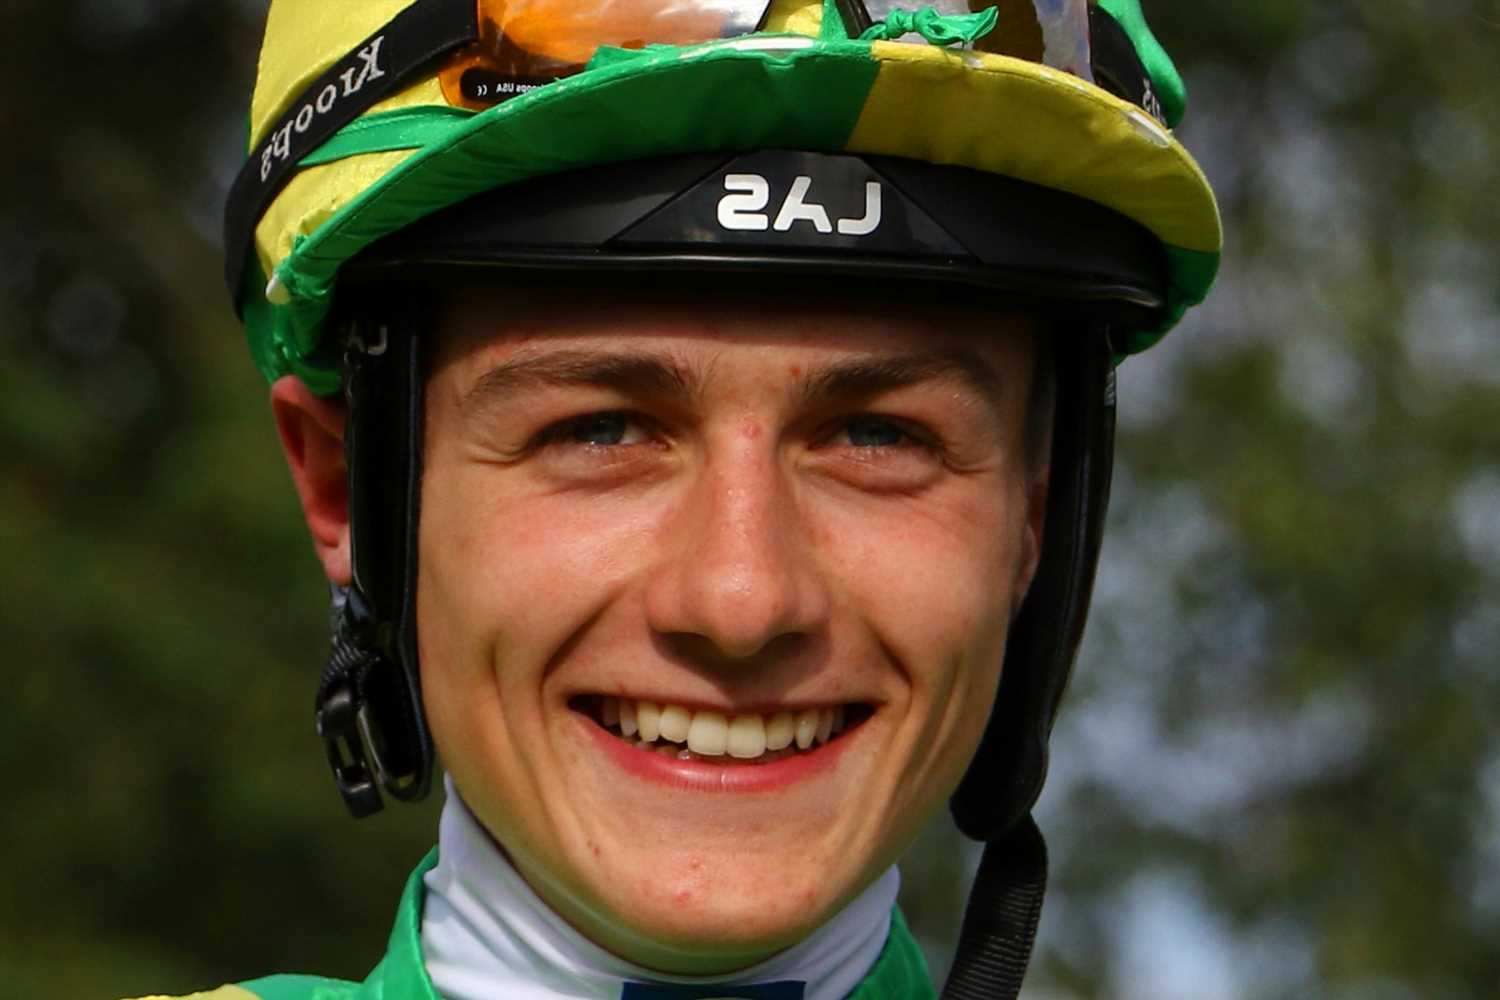 Popular jockey Michael Pitt, 19, found hanged at petrol station, inquest told as pals pay tribute to 'cracking lad'